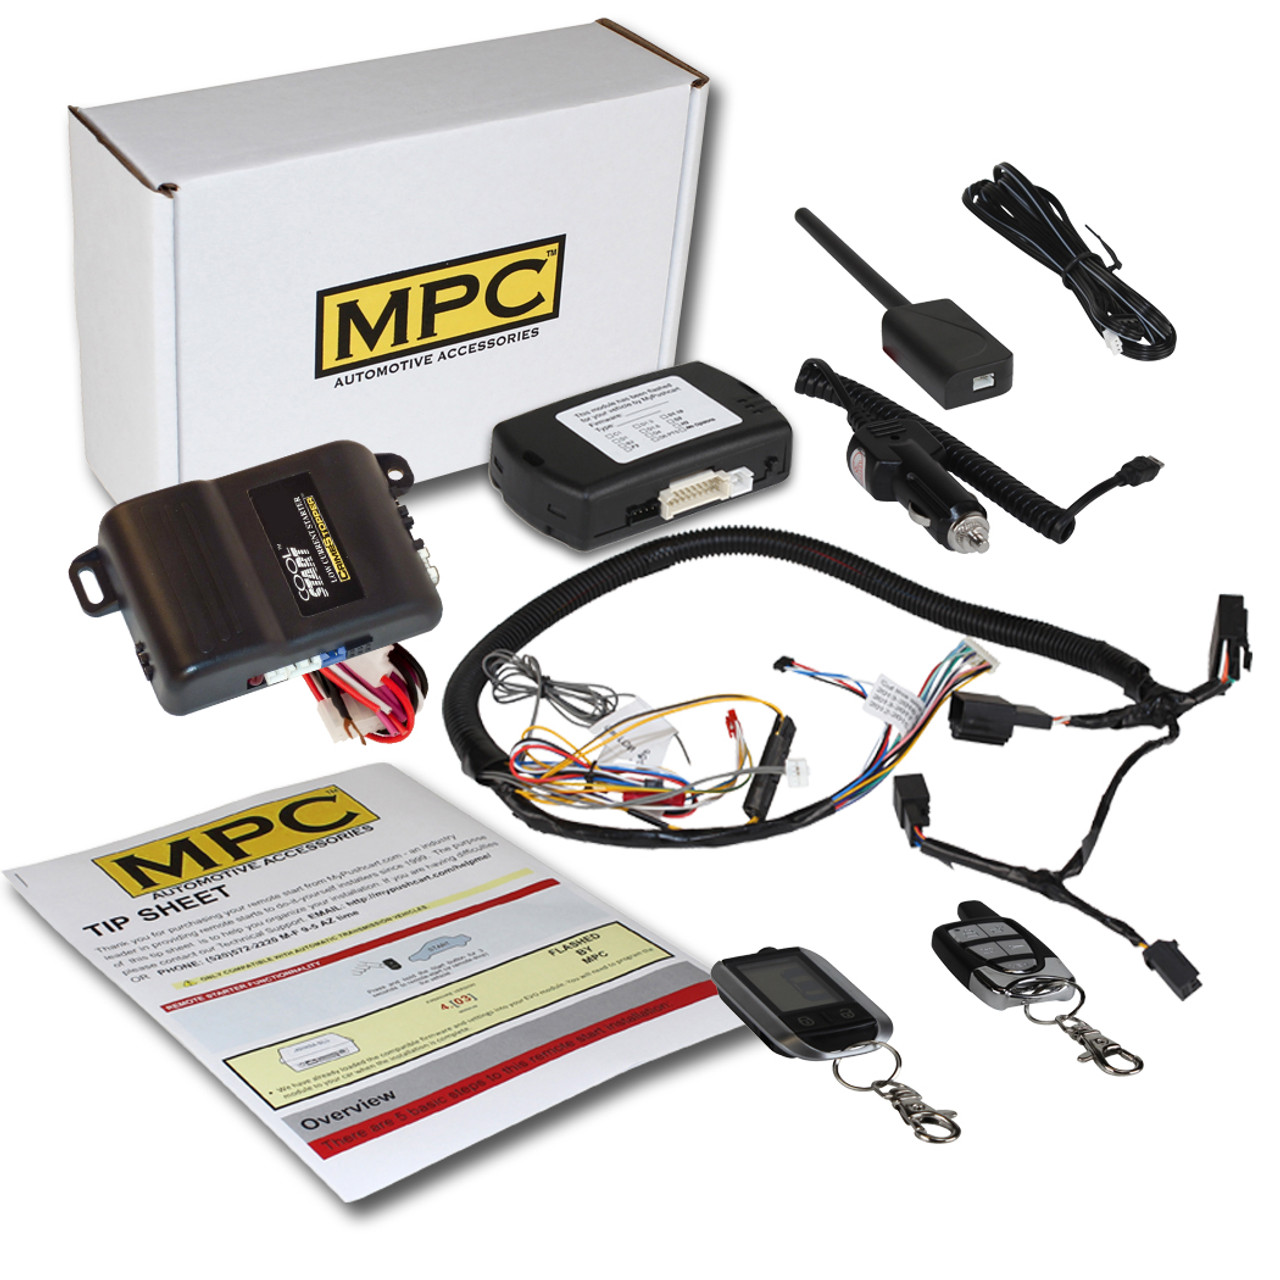 MPC Ford F-350 2011-2016 Prewired 5-Button LCD Remote Start w/Keyless Entry